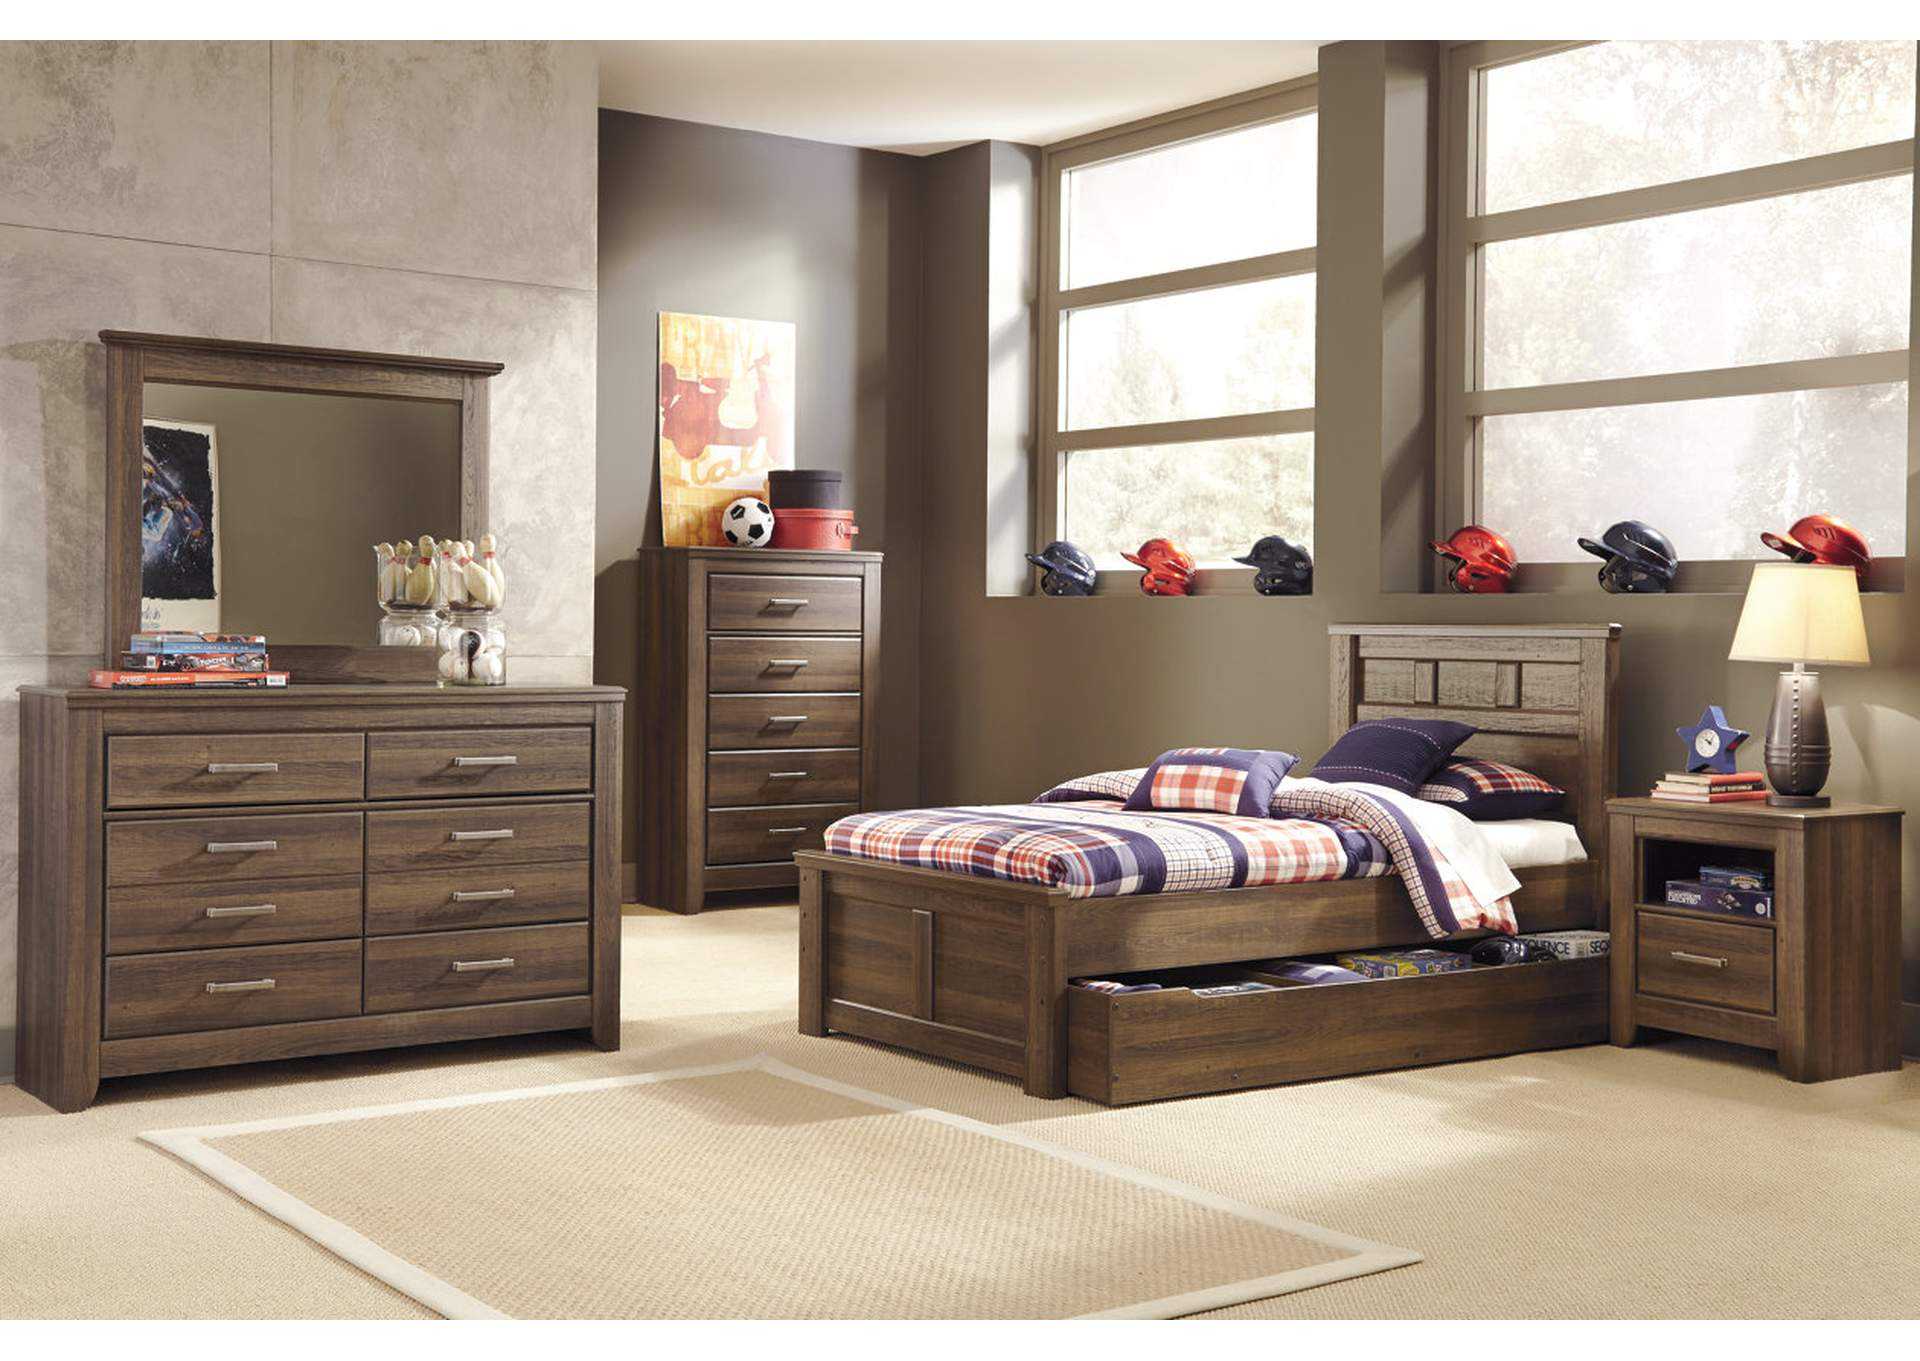 Juararo Twin Panel Storage Bed w/Dresser & Mirror,Signature Design By Ashley